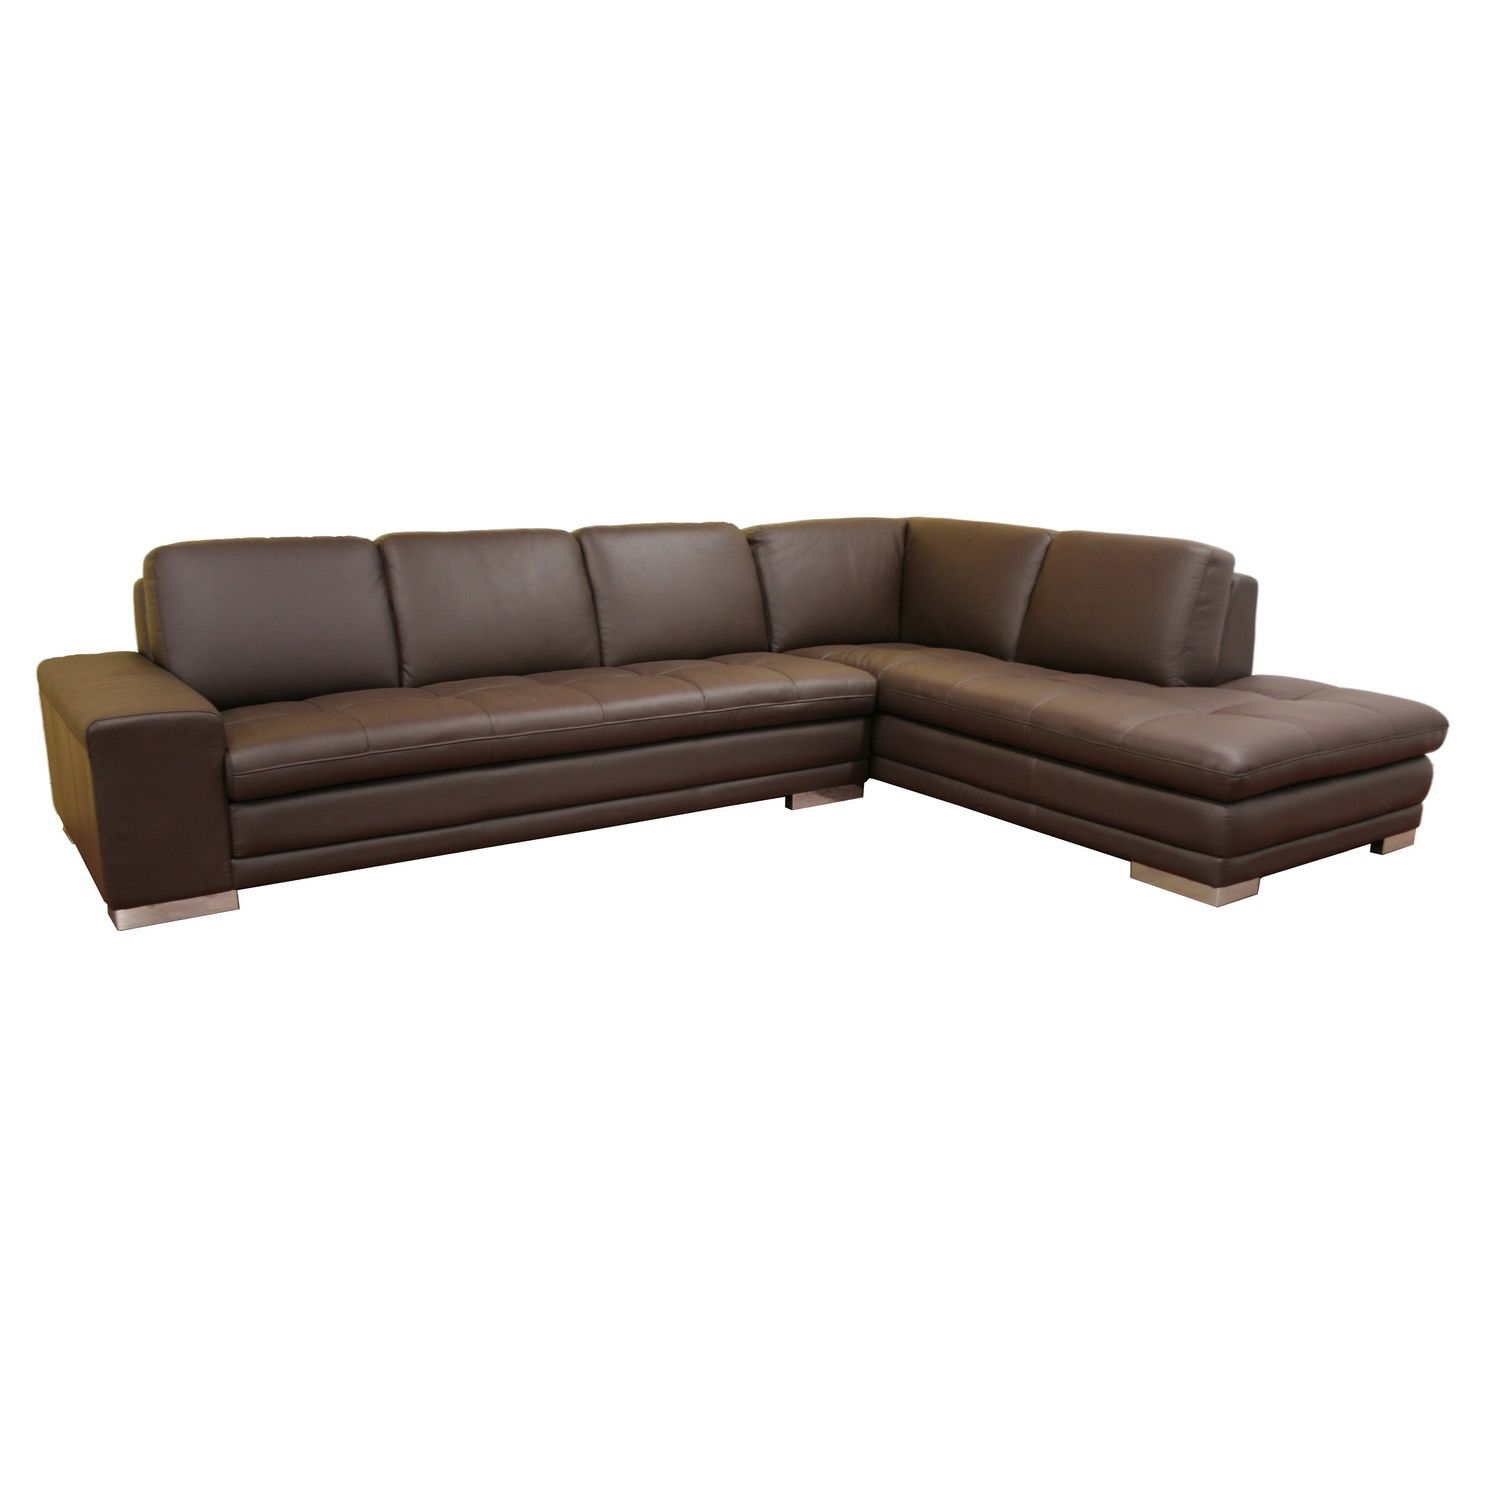 leather sofa bed sears andrew carter sofascore sectional sofas couches